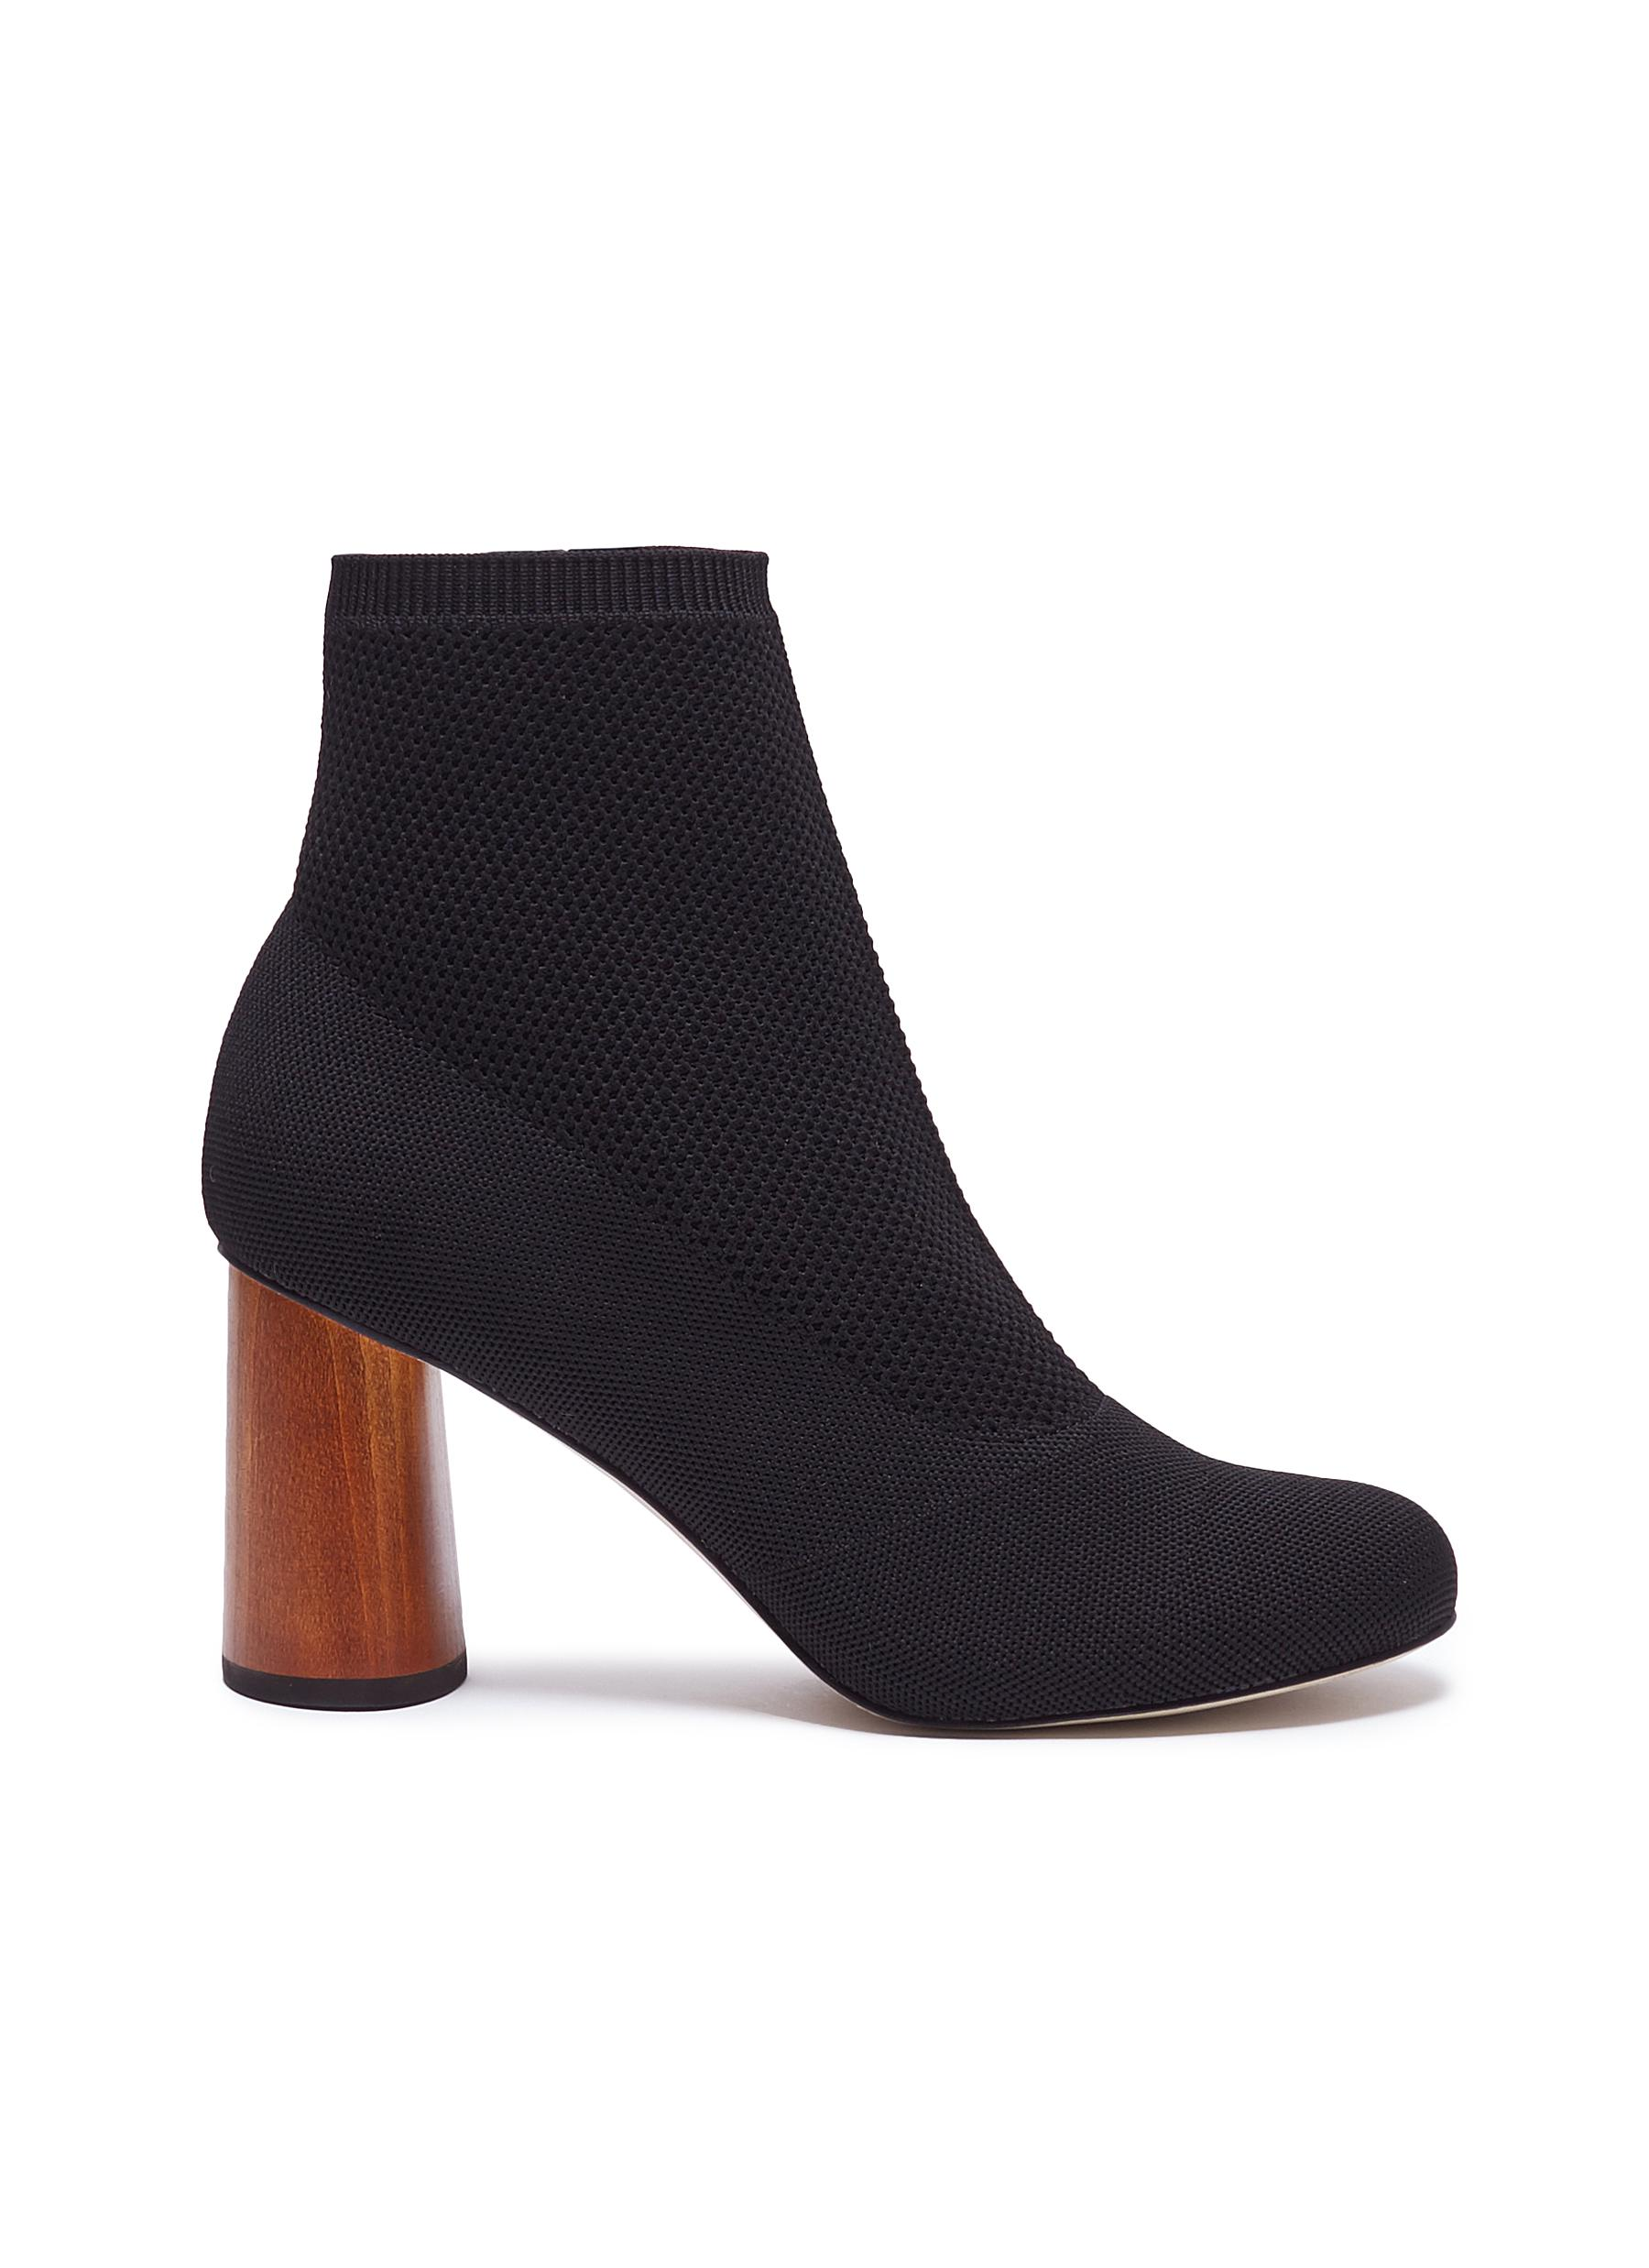 Bia wooden heel sock knit ankle boots by Pedder Red